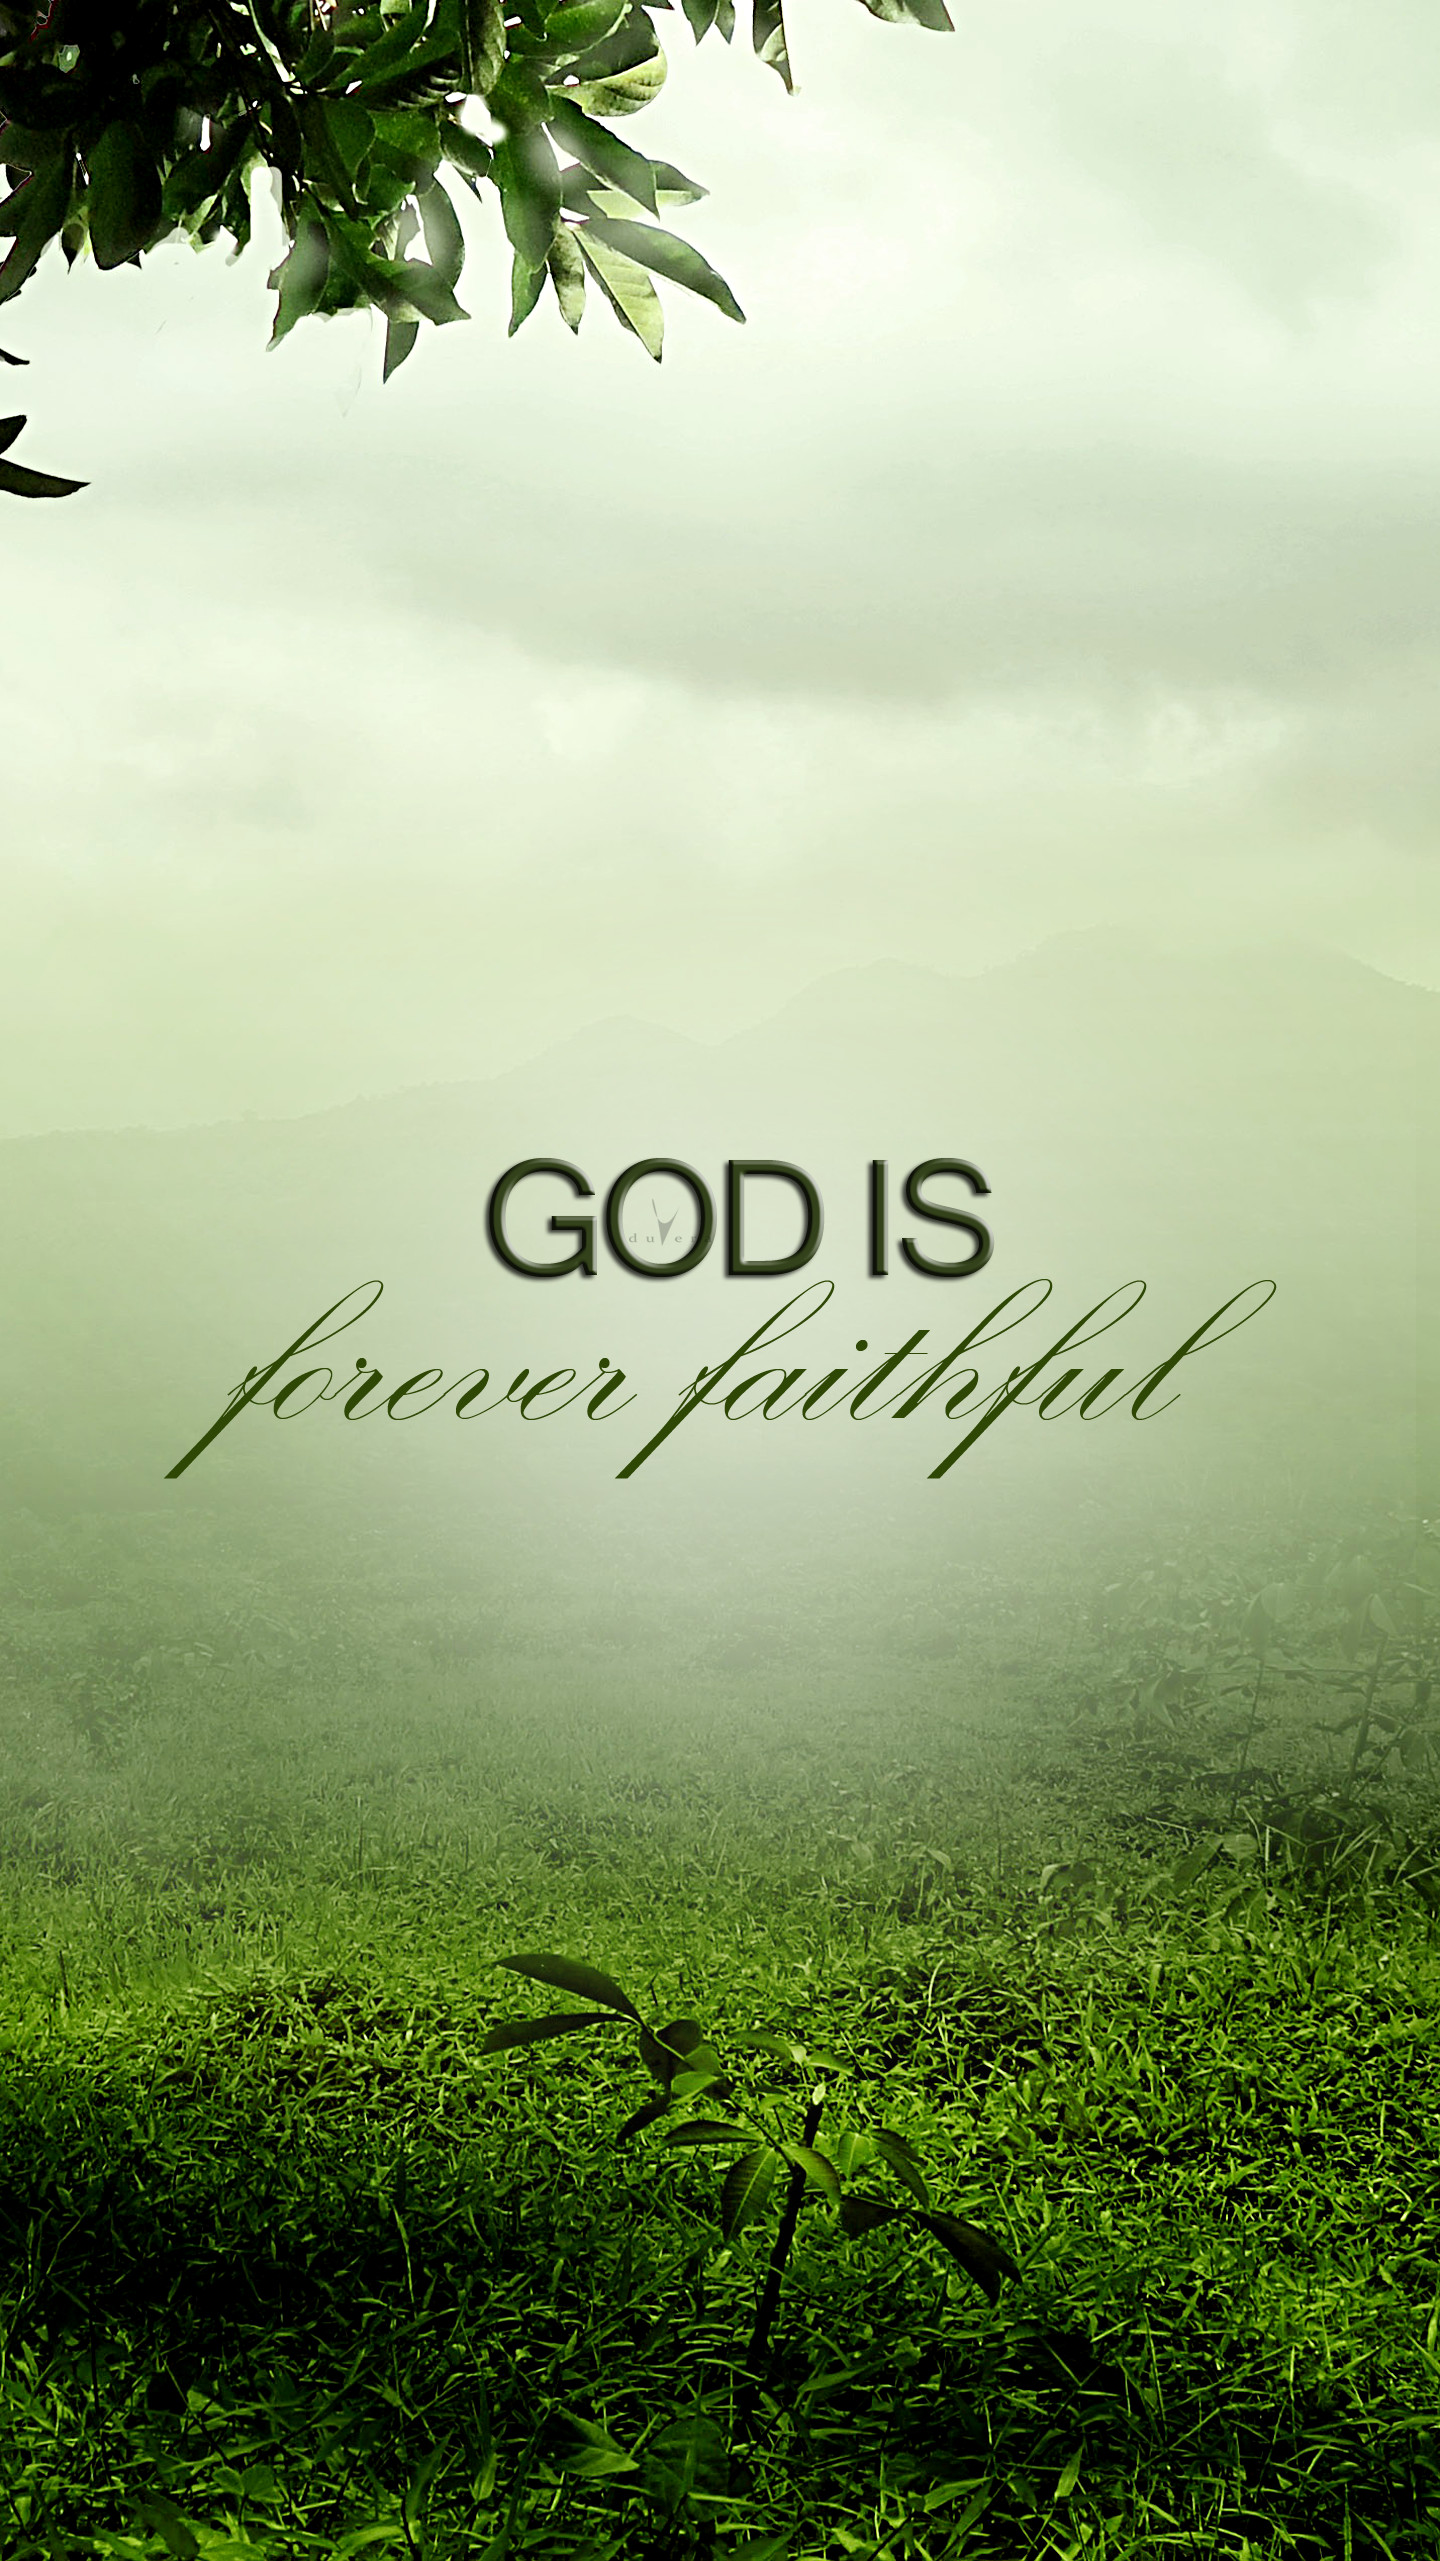 religious wallpapers for mobile phones: Christian HD Wallpapers 1080p (71+ Images